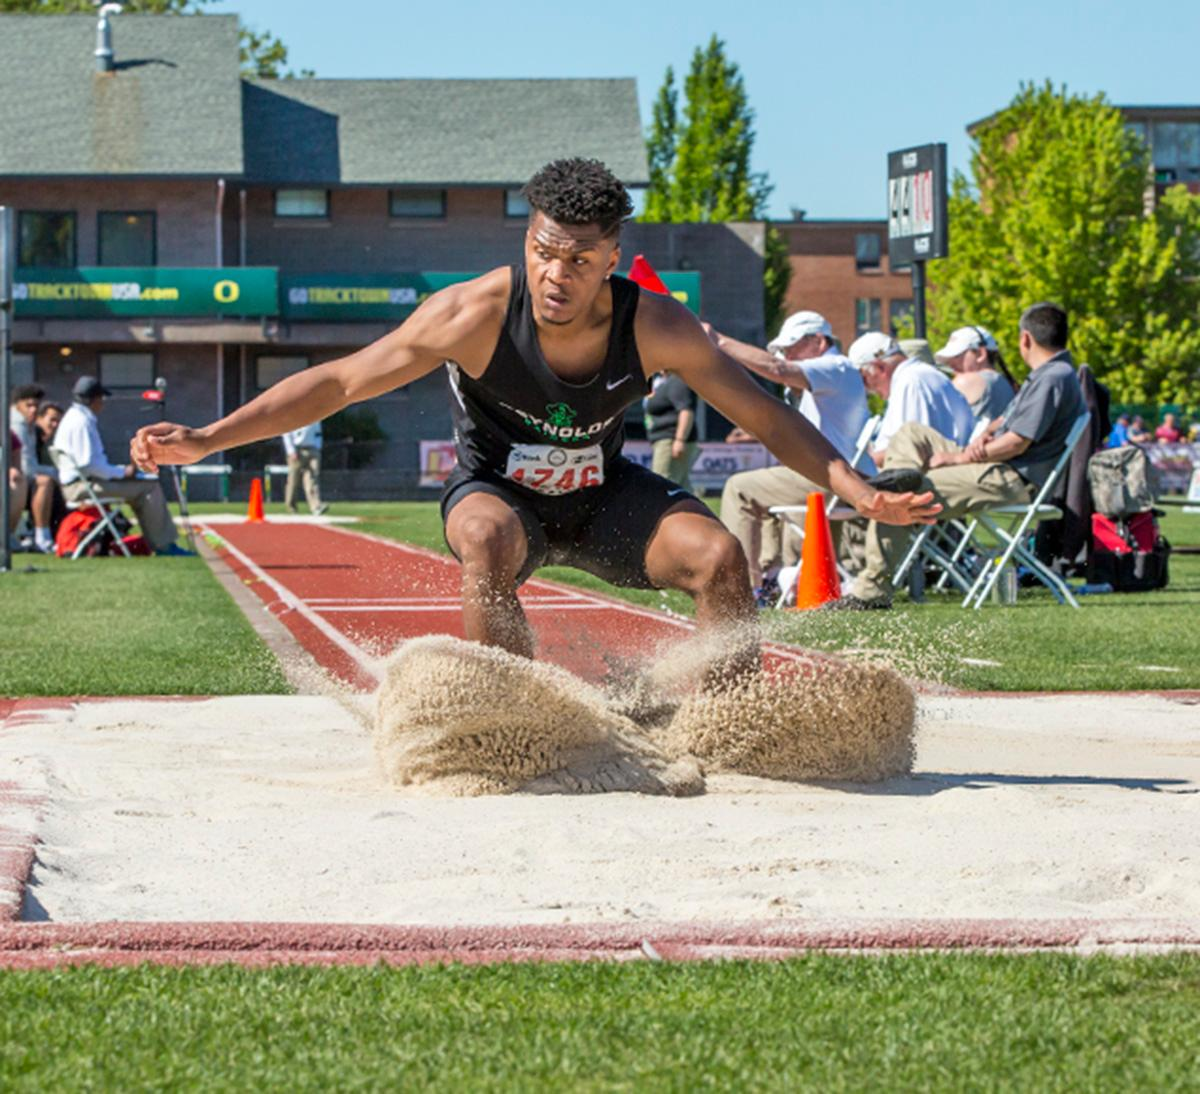 Long jumpers compete at the OSAA State Track Championships at Hayward Field on Saturday. Photo by James Wegter, Oregon News Lab